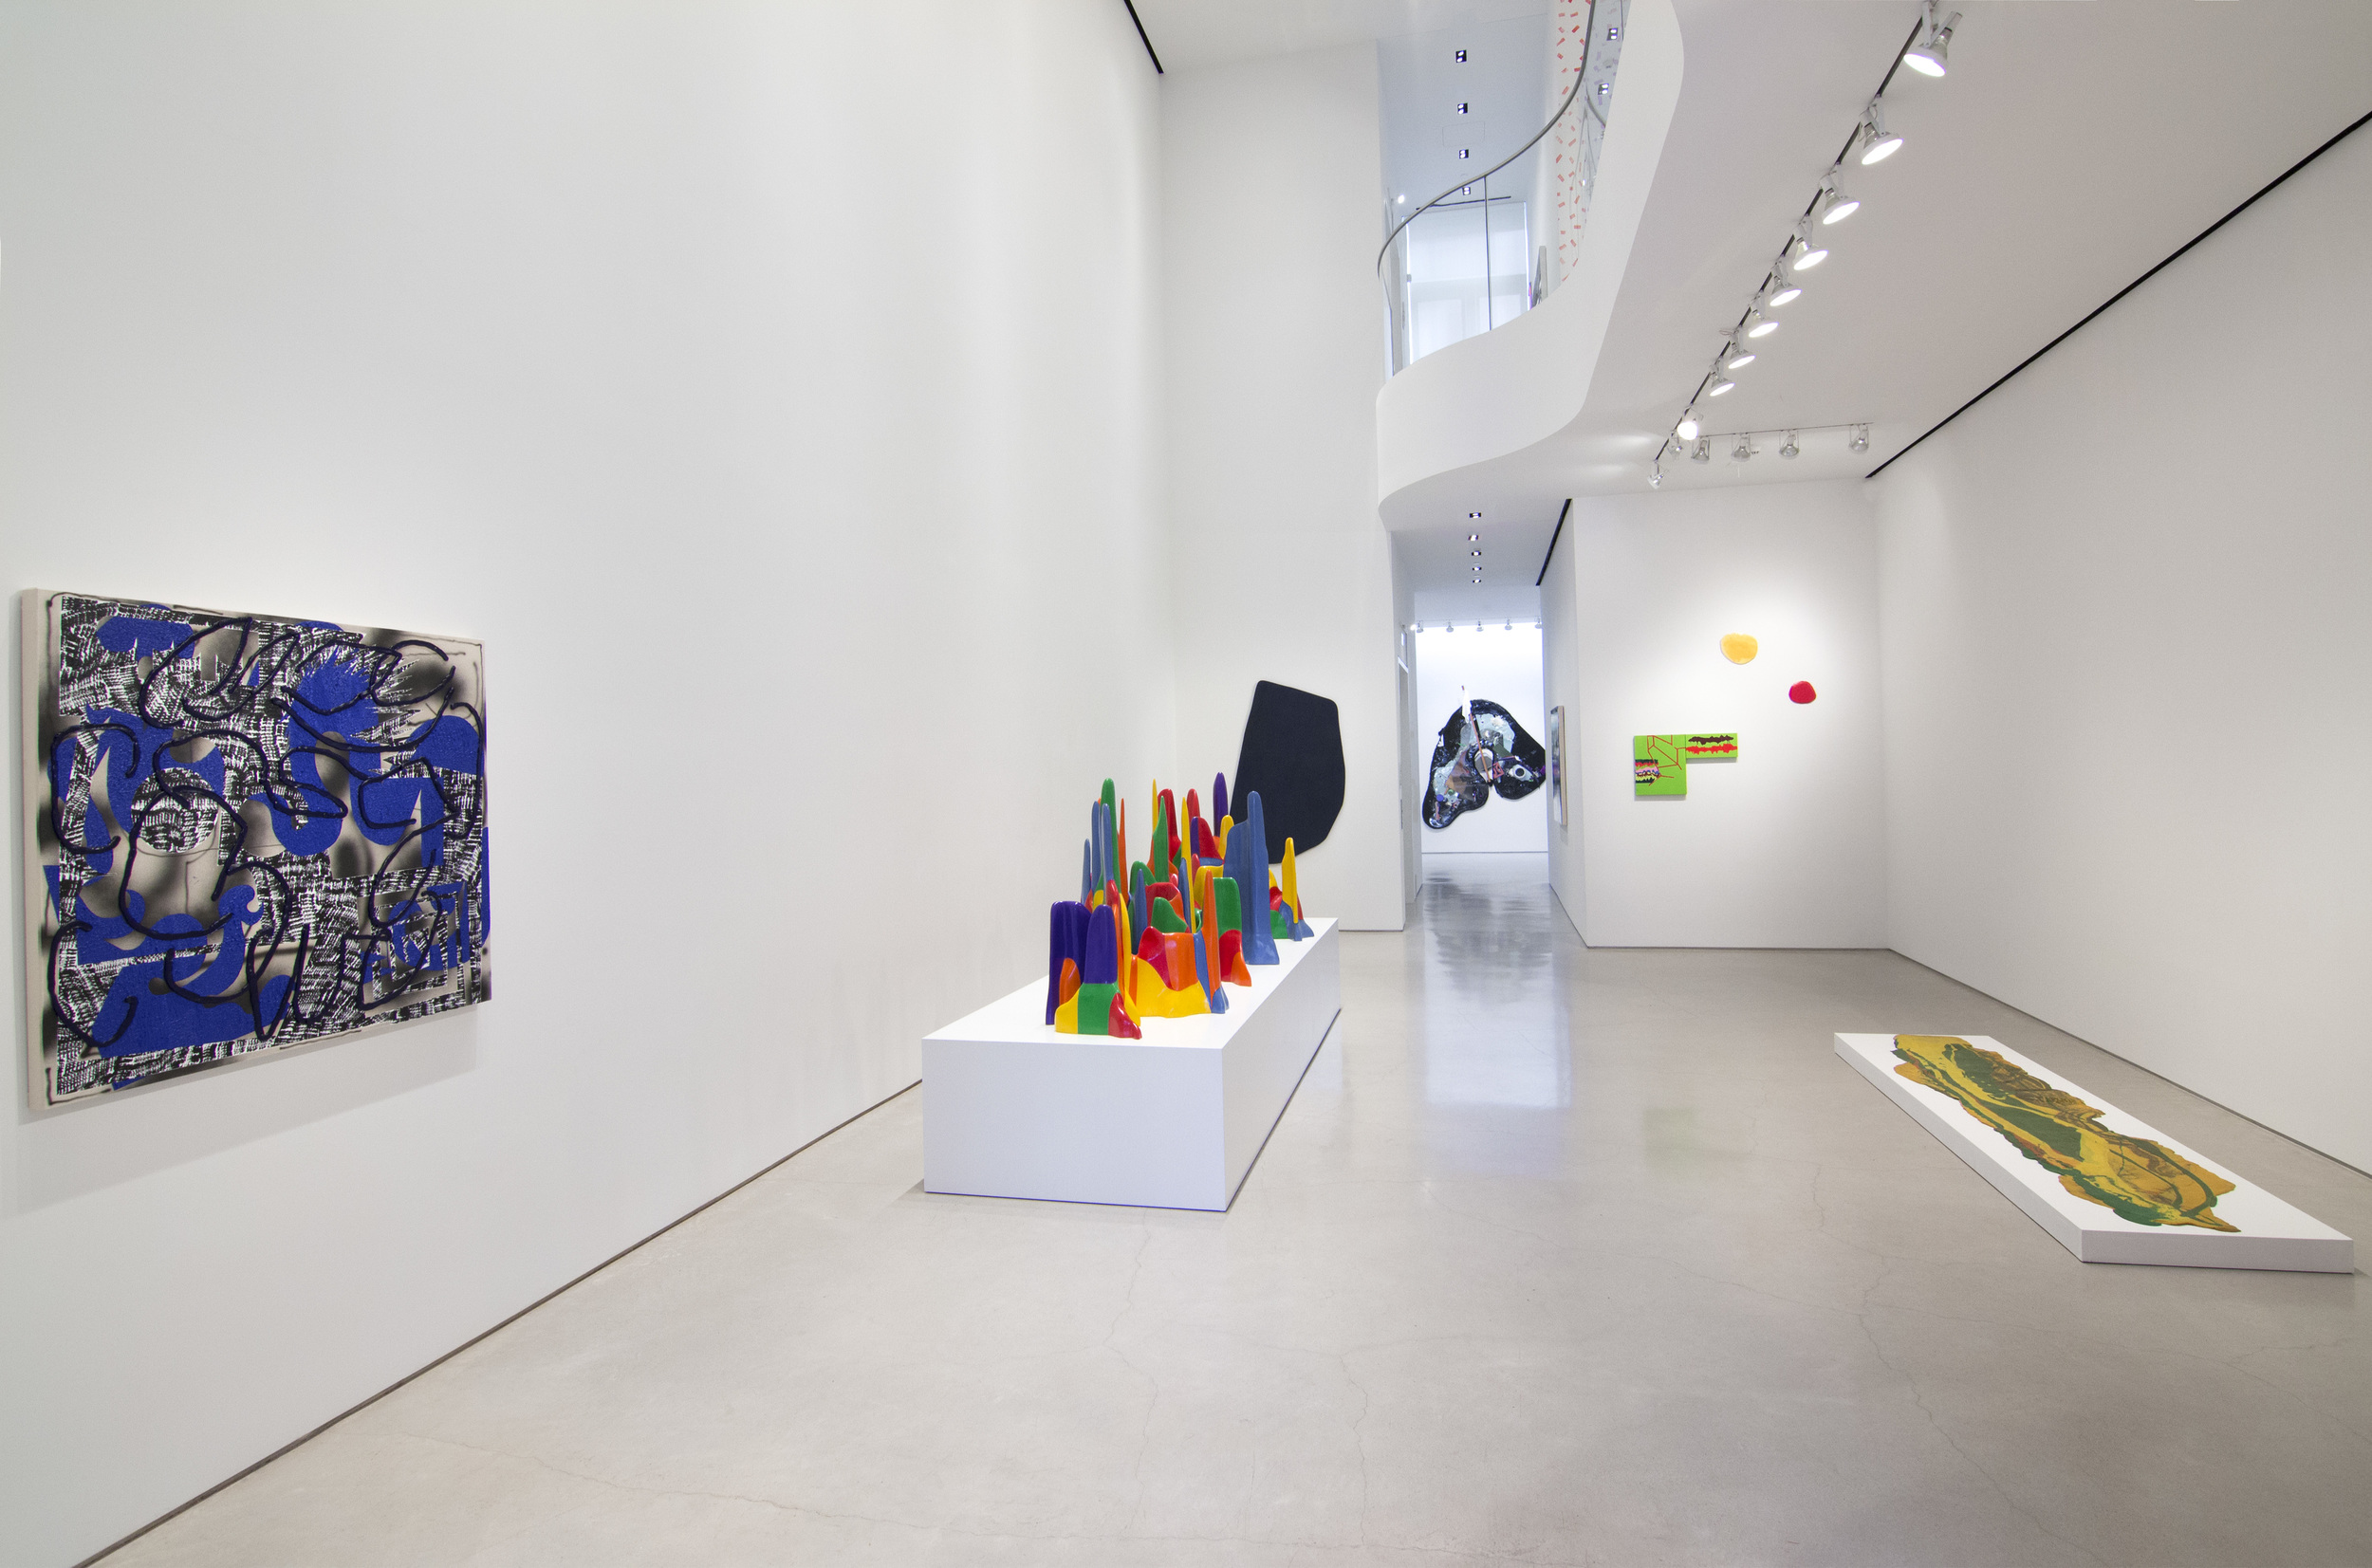 Splotch Installation view Sperone Westwater, New York Curated by Eileen Jeng 7 July – 5 August, 2016